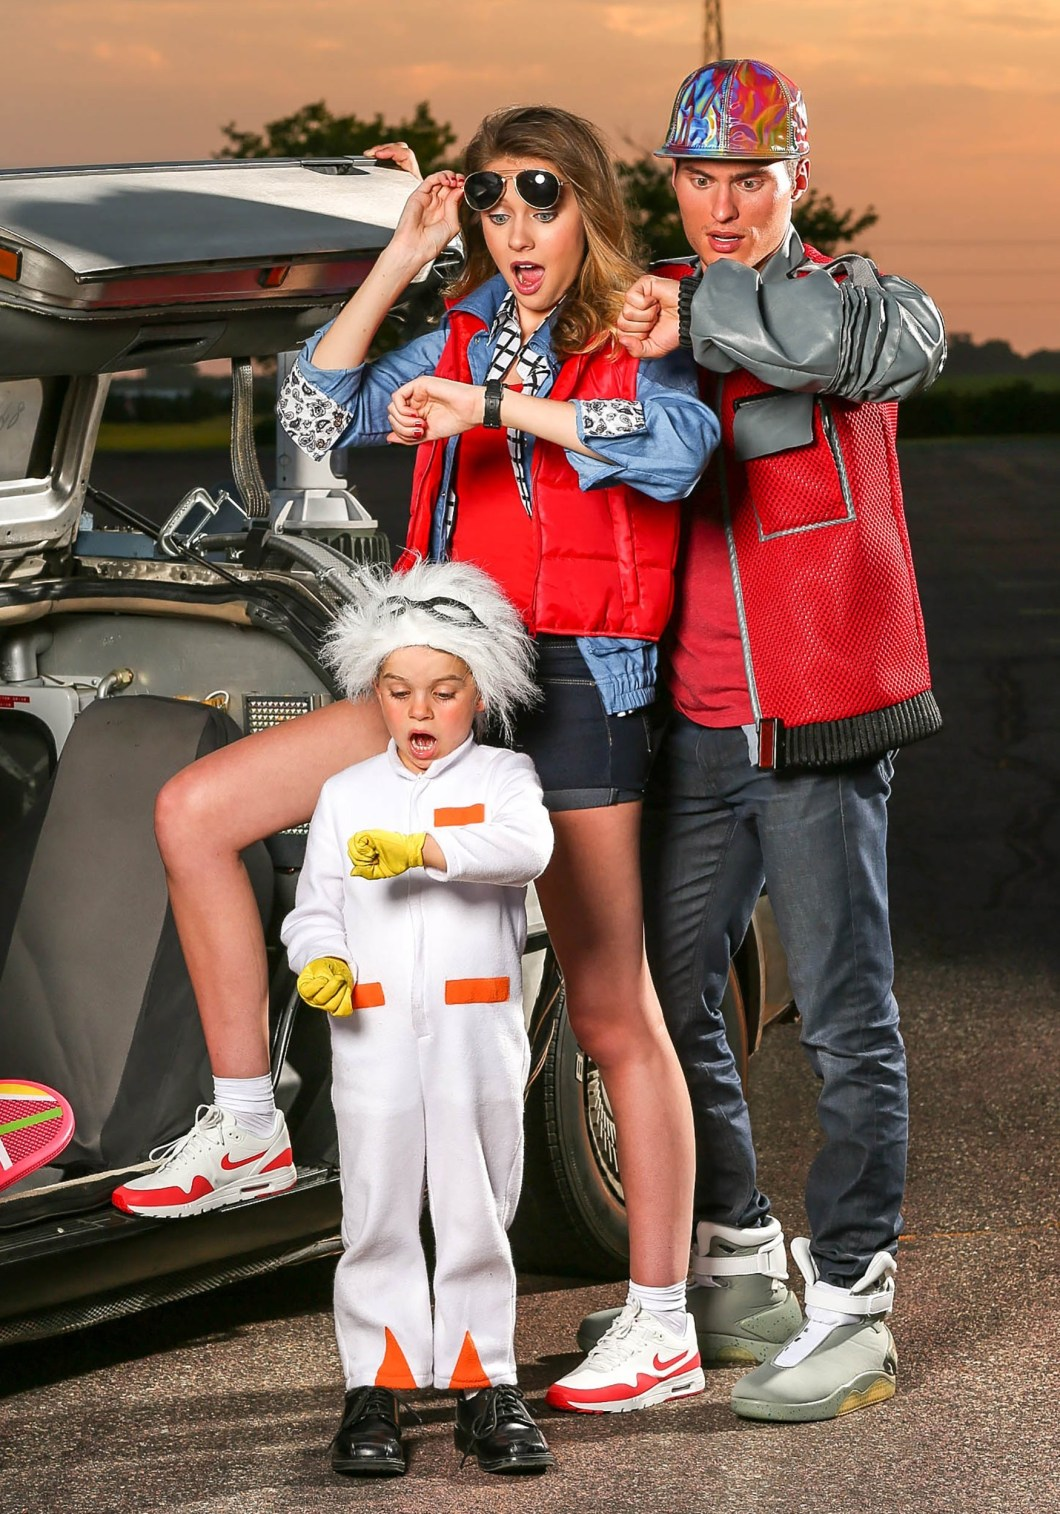 marty mcfly and doc halloween costume | hallowen